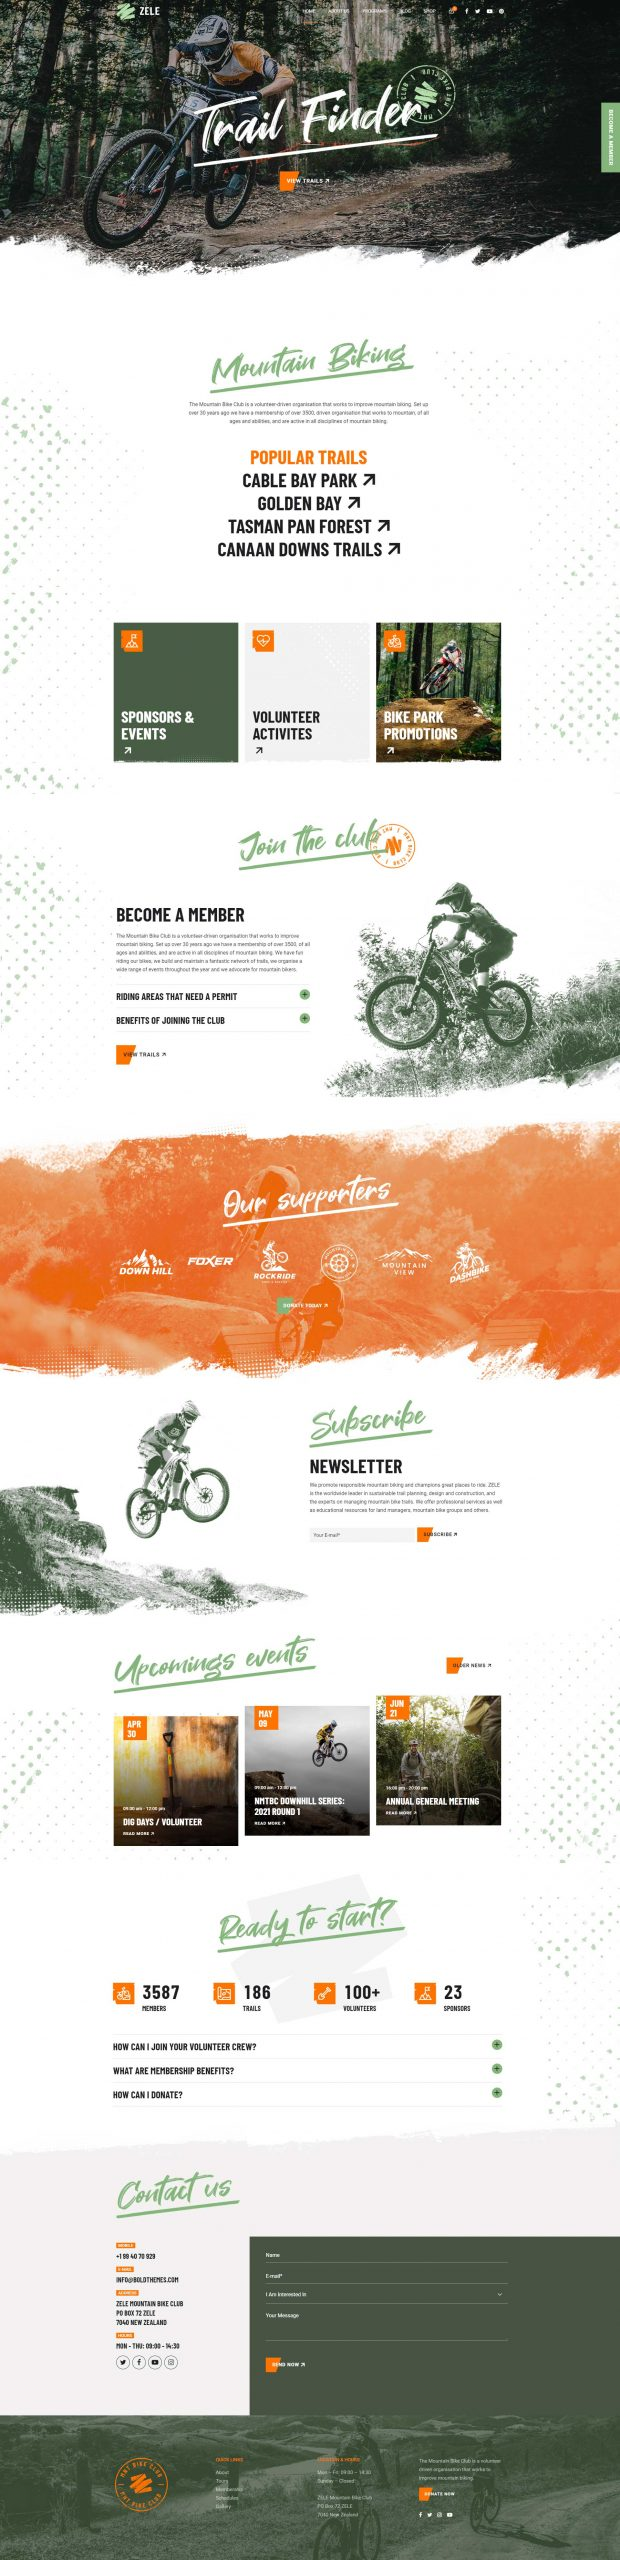 http://zele.bold-themes.com/wp-content/uploads/2021/07/Rough-Home-04-scaled-1.jpg